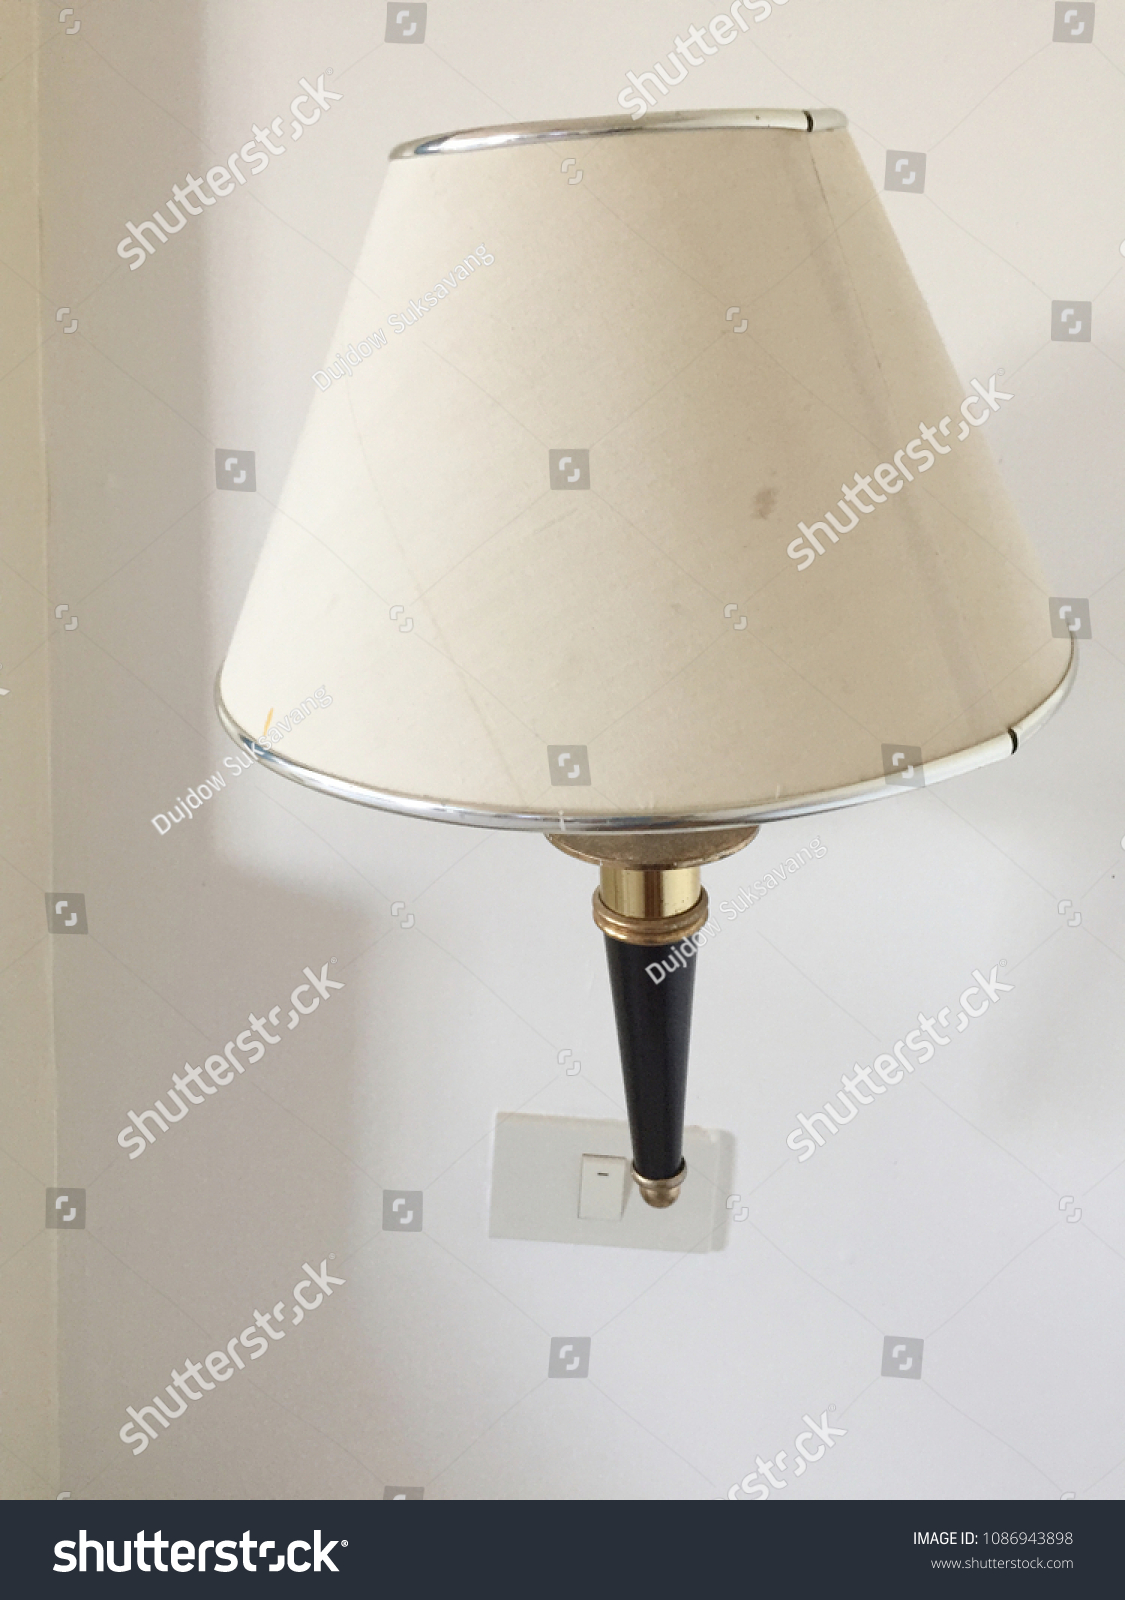 Beautiful Lamps For Bedroom Beautiful Color Lamps Bedroom Stock Photo Edit Now 1086943898